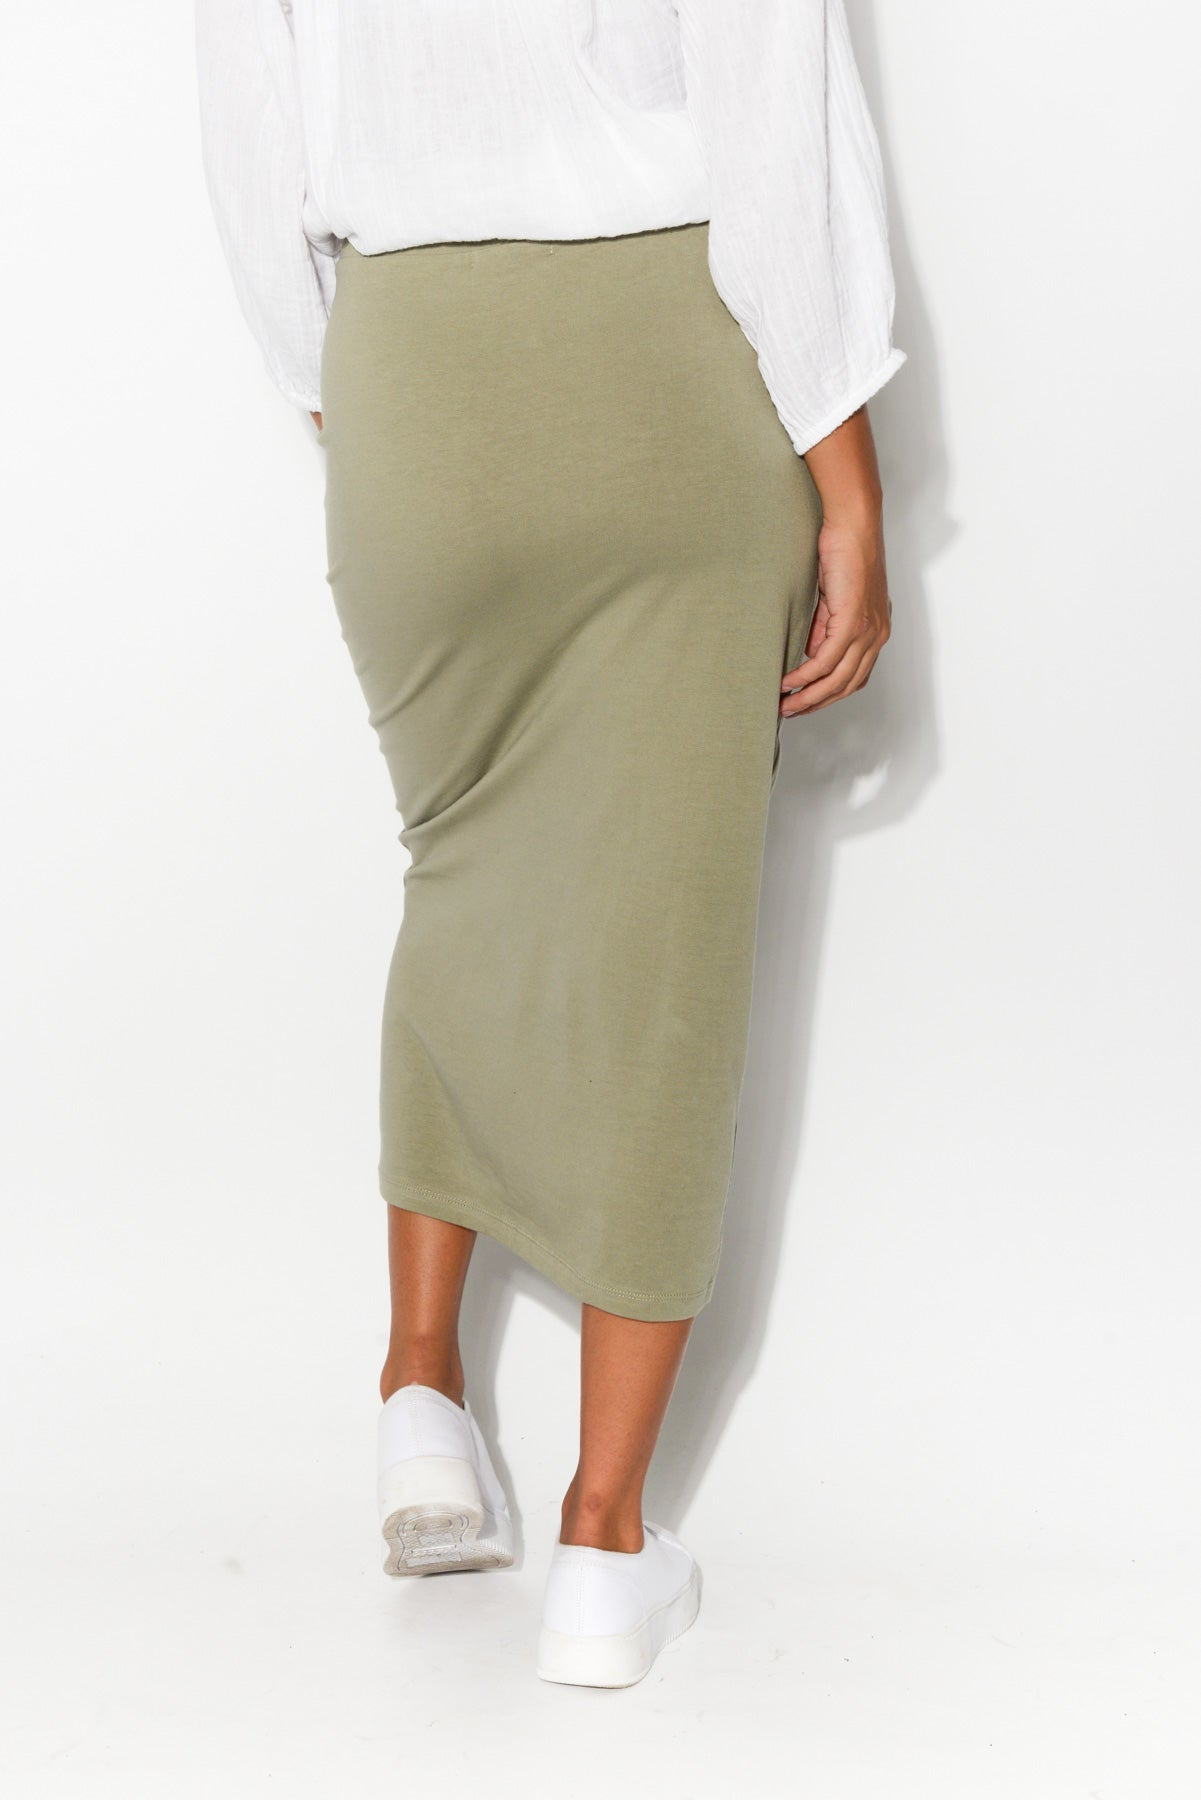 Gigi Khaki Midi Skirt - Blue Bungalow